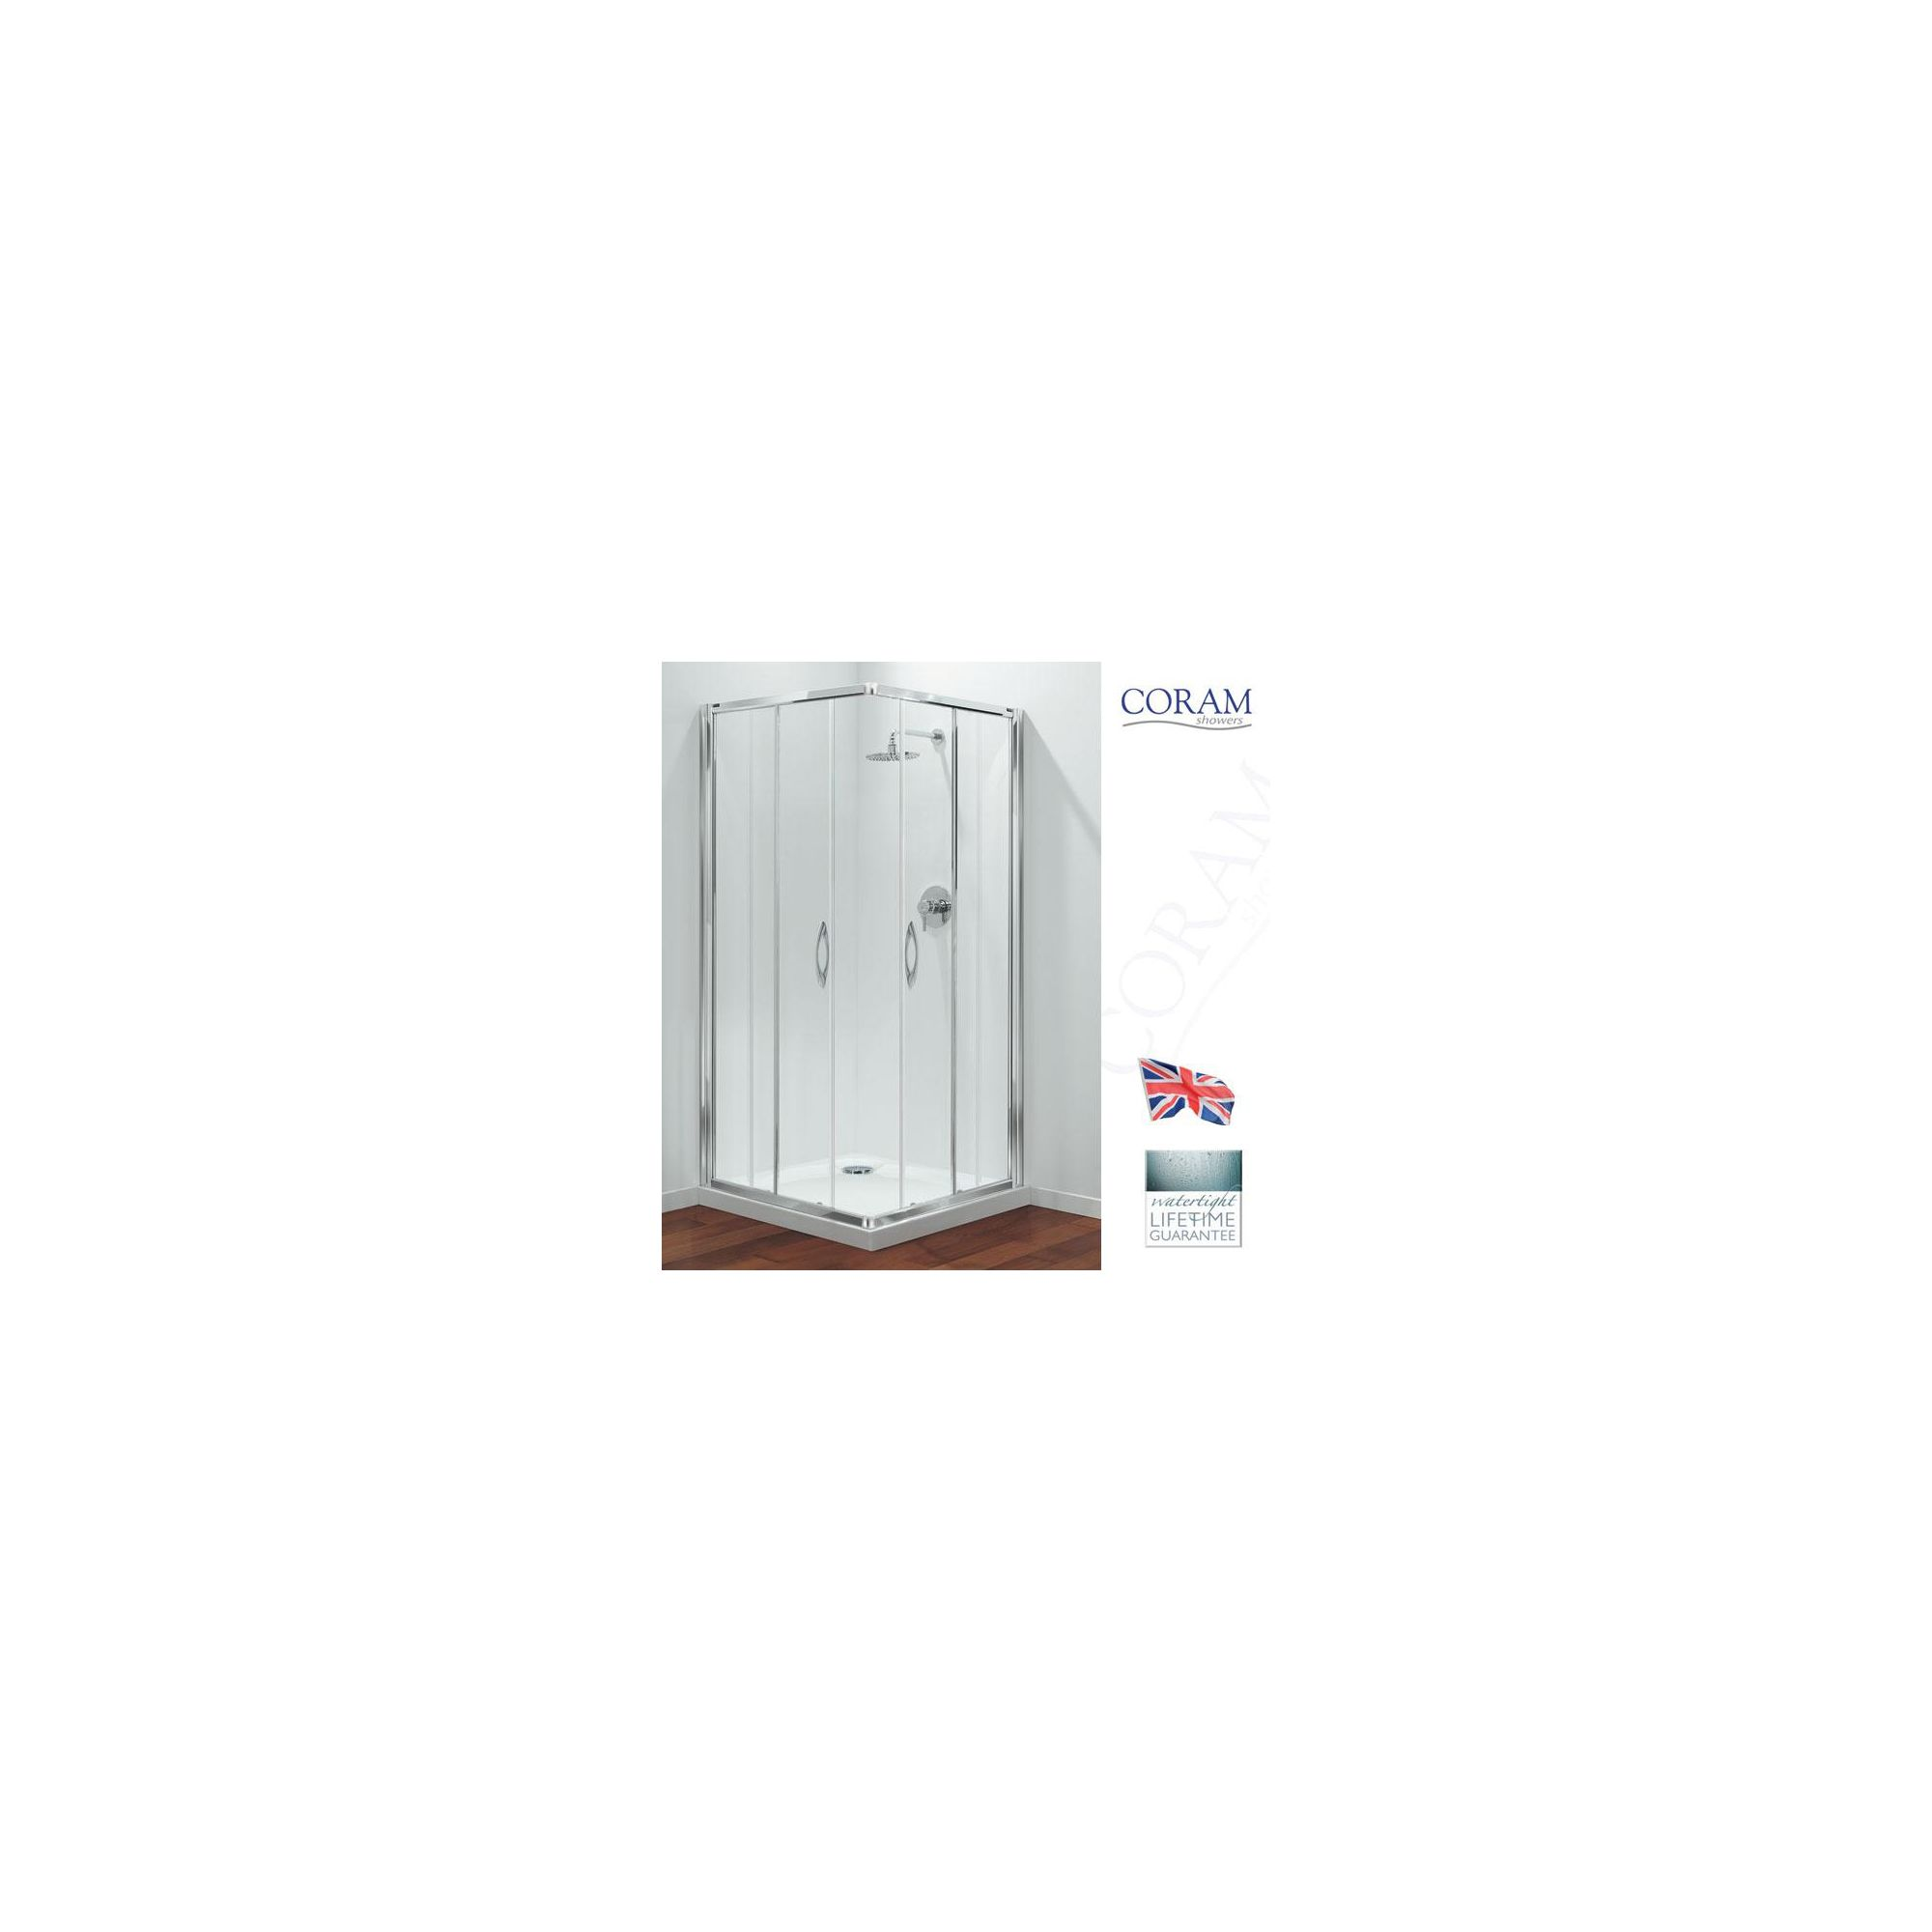 Coram Premier Corner Entry Shower Enclosure, 760mm x 760mm, Low Profile Tray, 6mm Glass at Tesco Direct